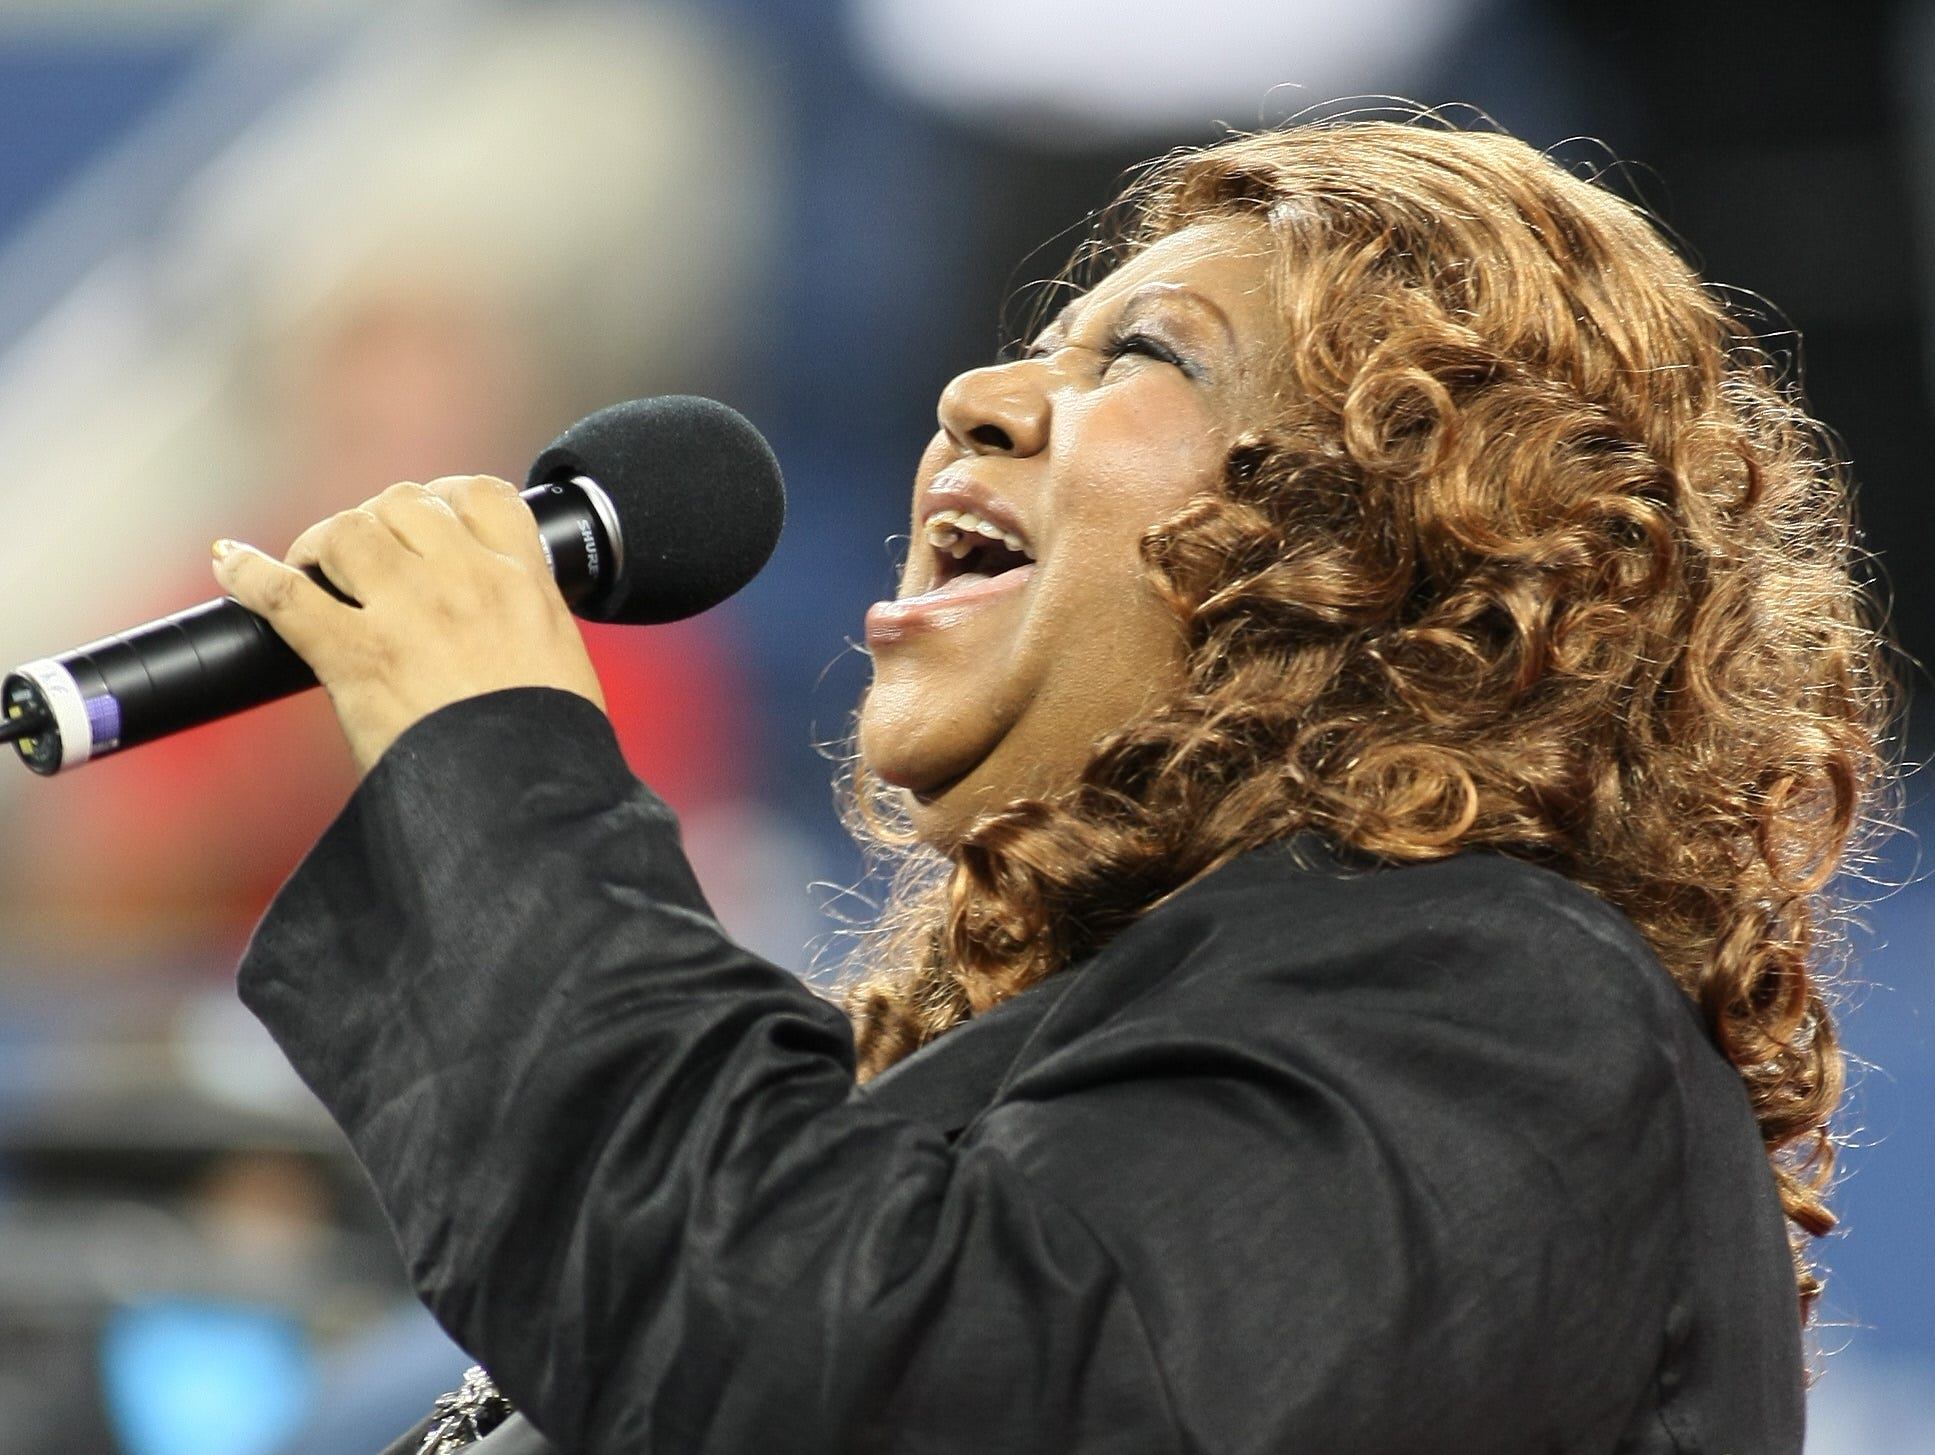 (FILES) In this file photo taken on August 27, 2007 Singer Aretha Franklin performs during a ceremony honoring the late African-American tennis player Althea Gibson at the US Open in Flushing Meadows, New York. - Aretha Franklin died at the age of 76 on August 16, 2018 at her home in Detroit according to her publicist. (Photo by Don EMMERT / AFP)DON EMMERT/AFP/Getty Images ORIG FILE ID: AFP_18C7RJ